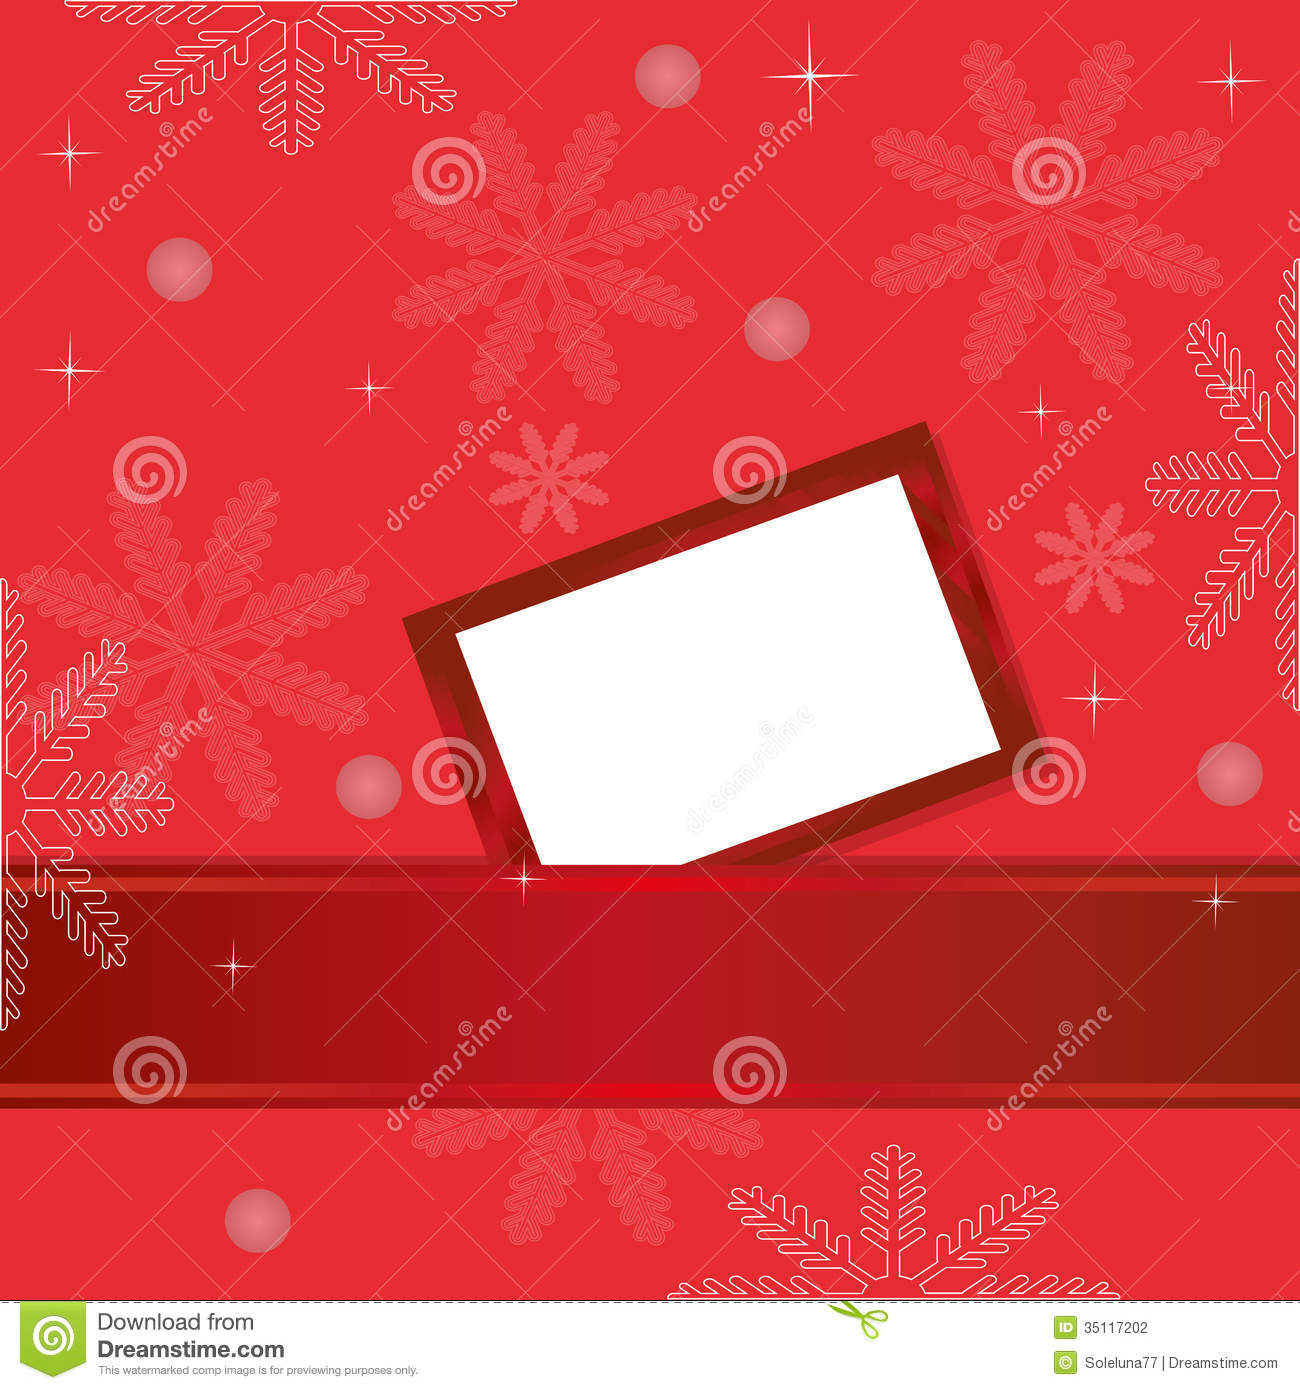 Red Christmas Background With Greeting Card Stock Vector. Resume References Have. Application For Employment Template South Africa. Cover Letter For No Experience Cleaner. Resume Examples Creative. Letter Format Outline. Resume Building Geeksforgeeks. Sample Excuse Letter For Cutting Classes. Resume Skills Ideas